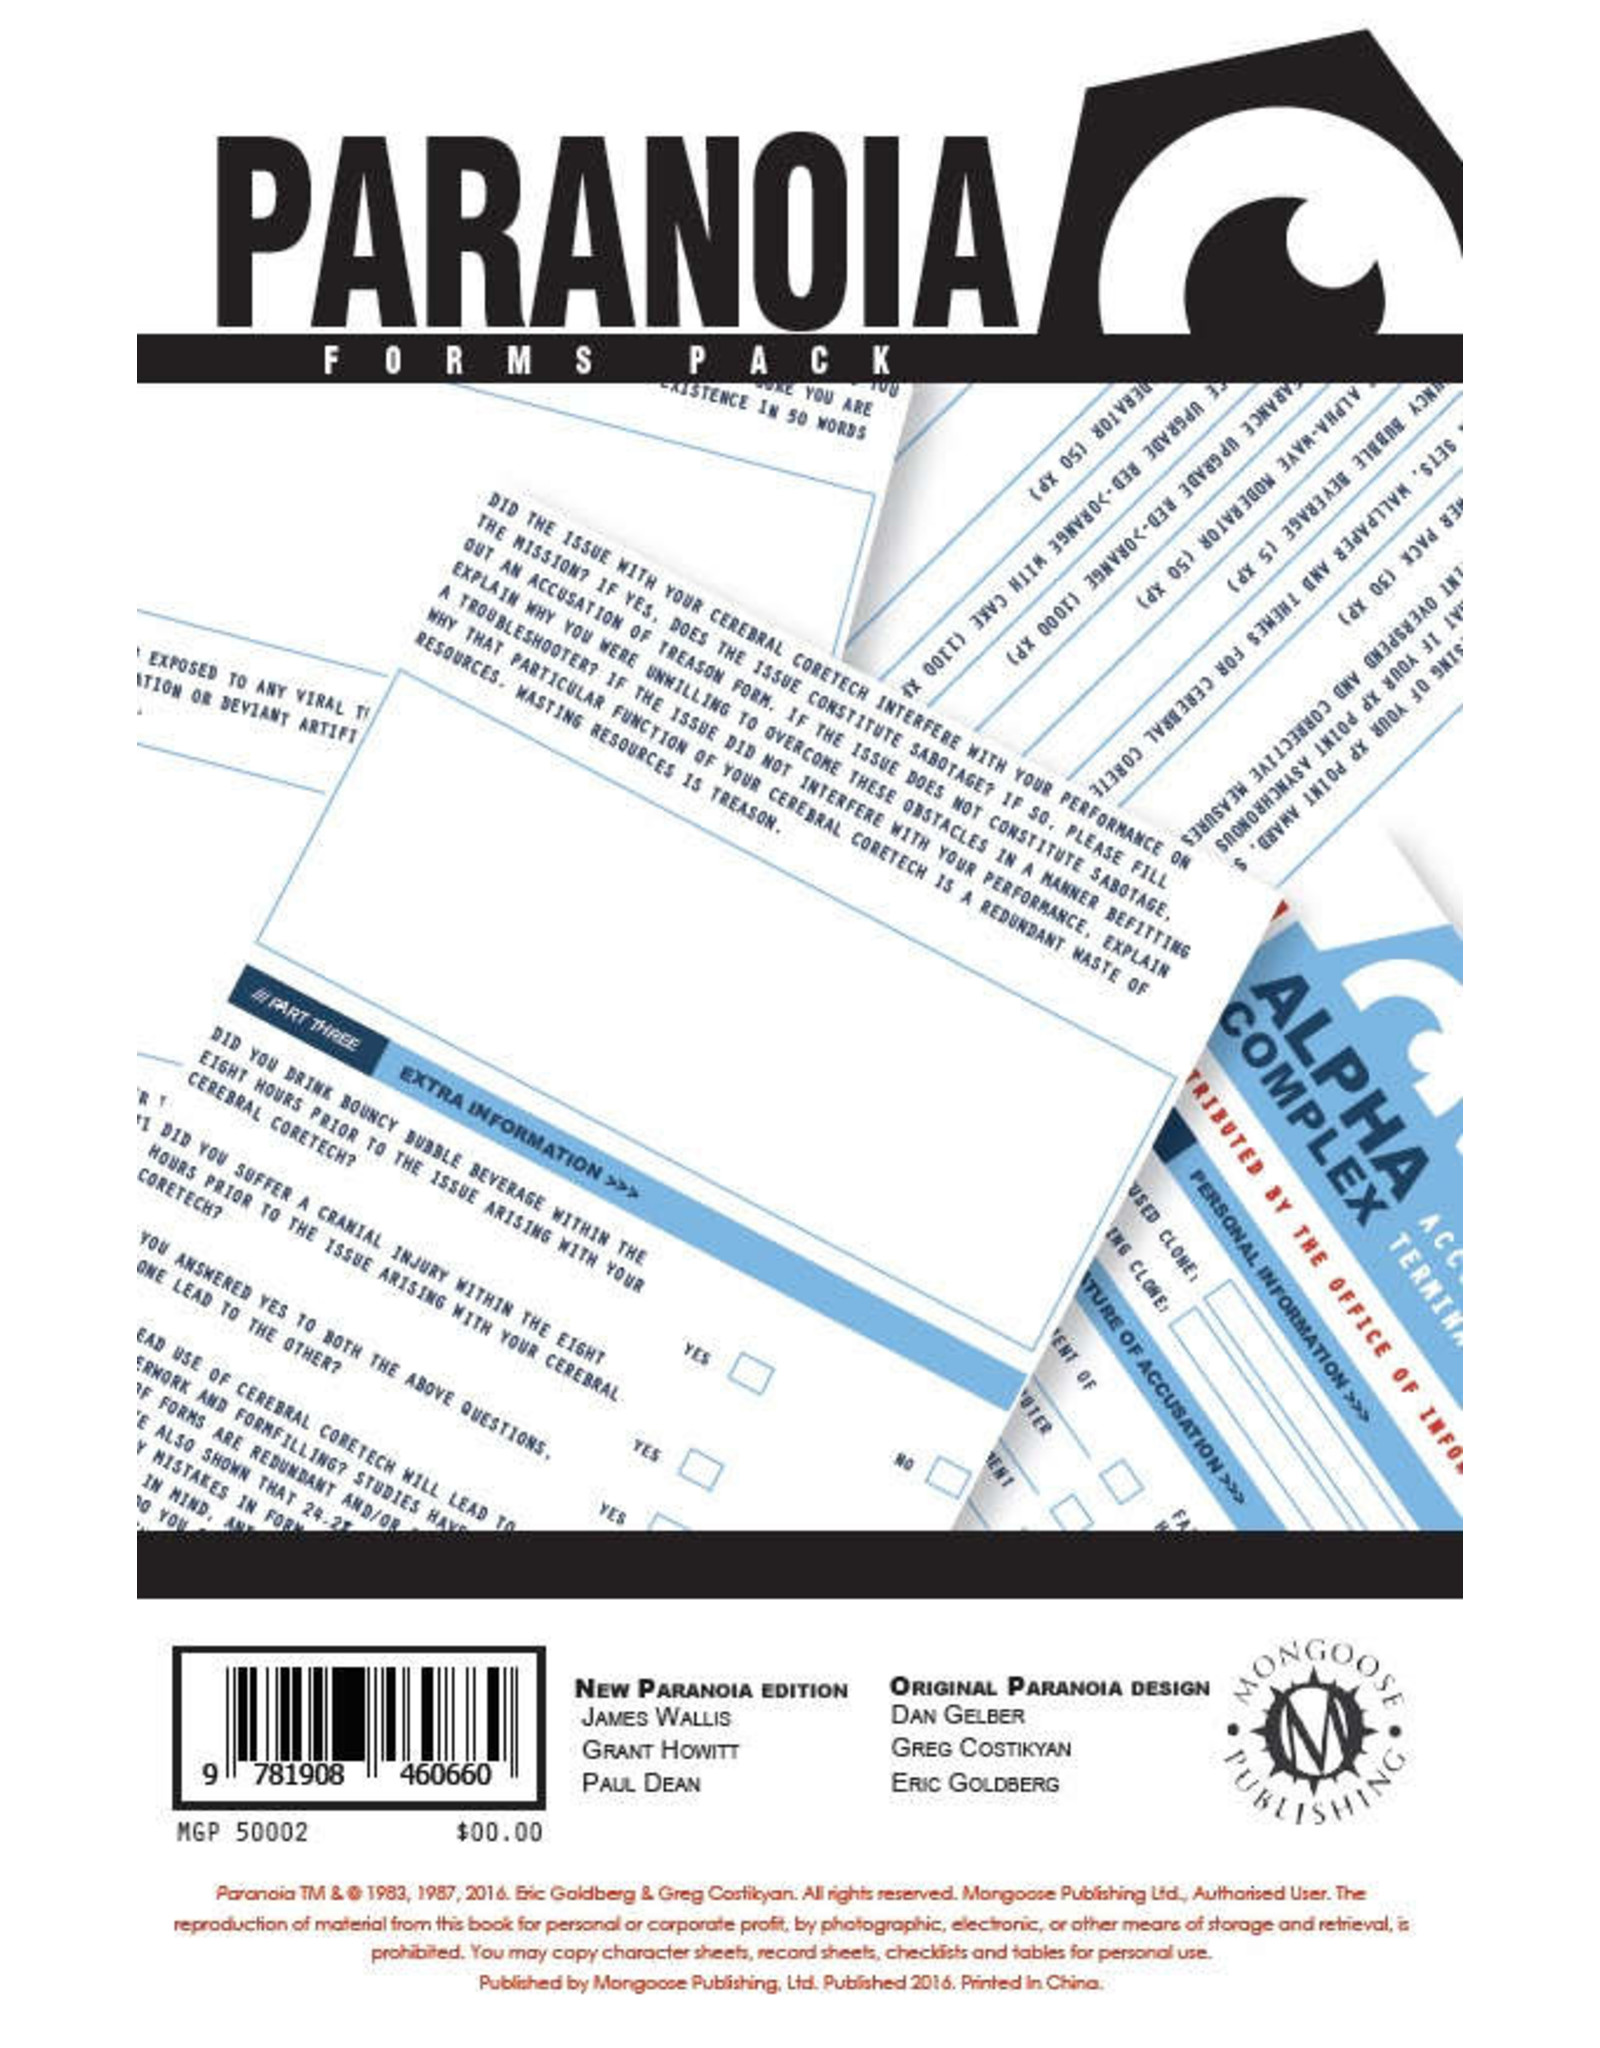 Paranoia RPG: Forms Pack